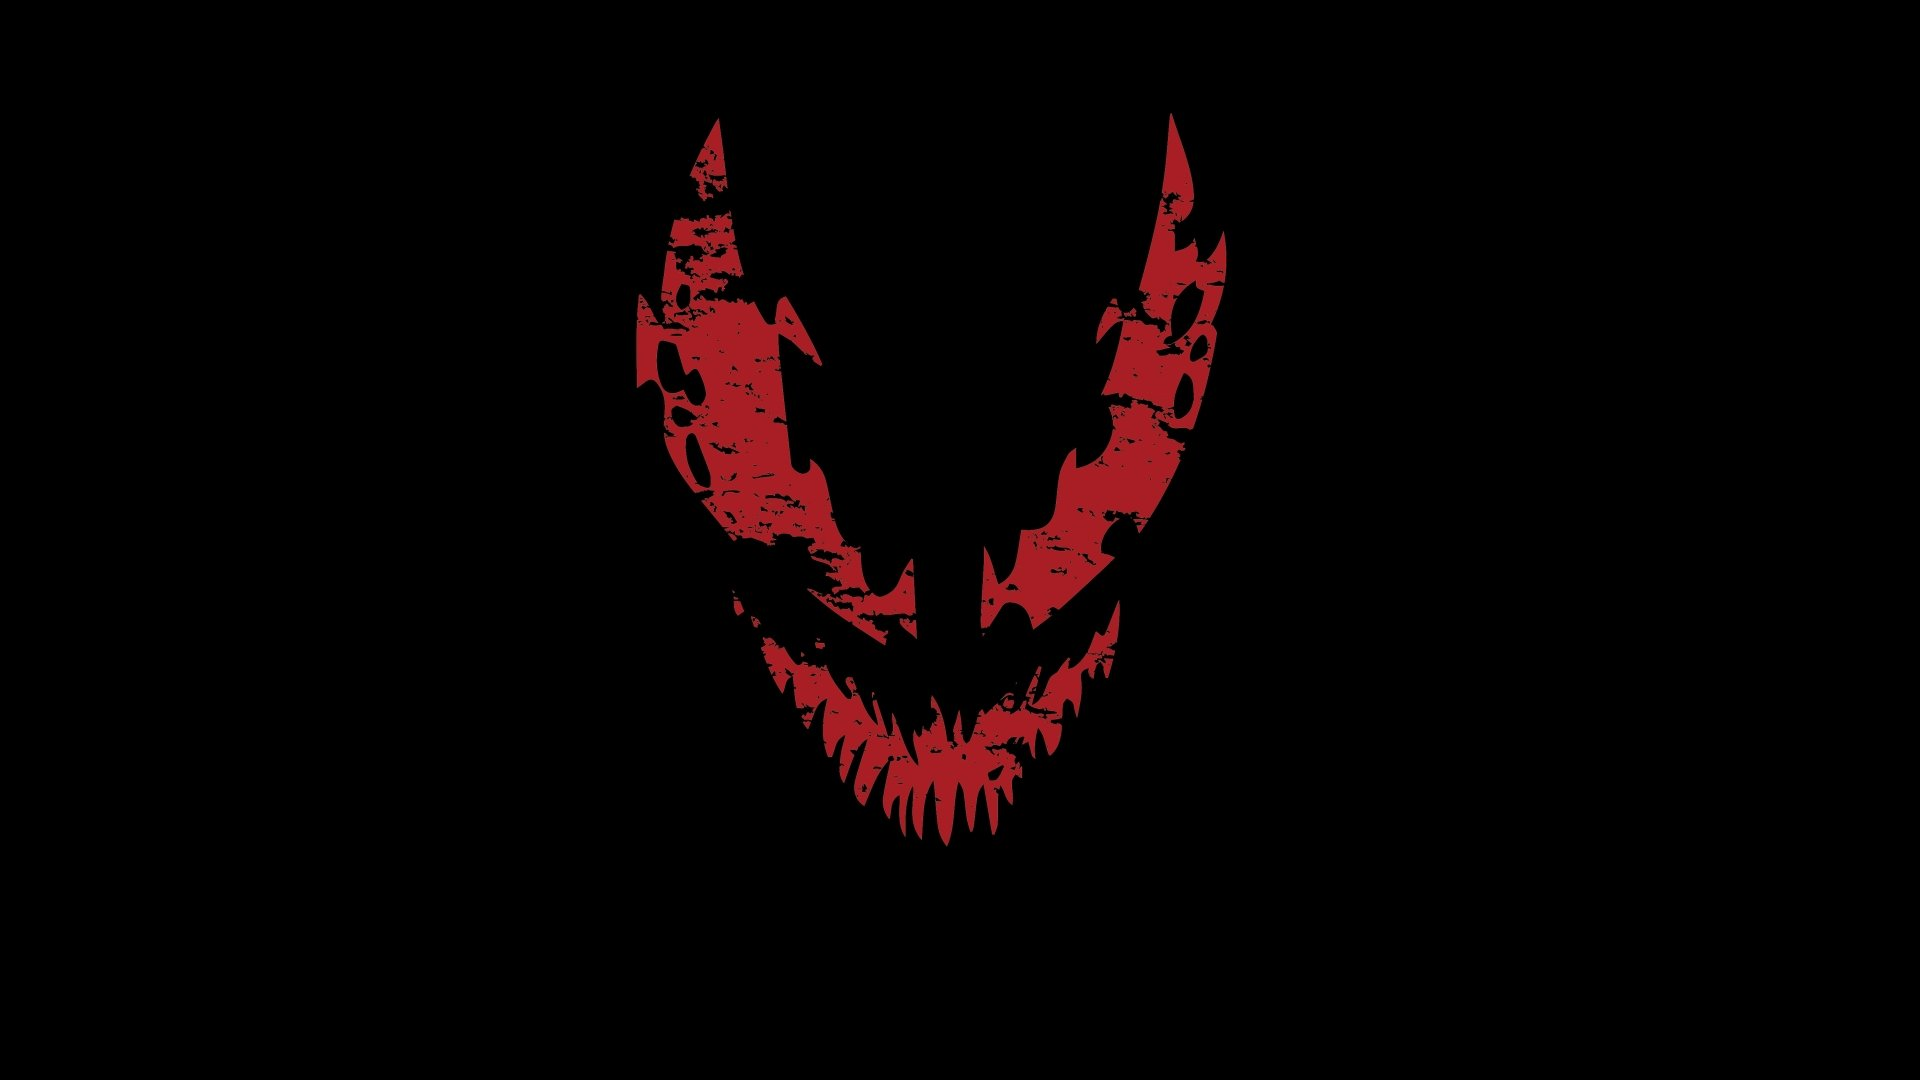 62 Carnage Hd Wallpapers Background Images Wallpaper Abyss